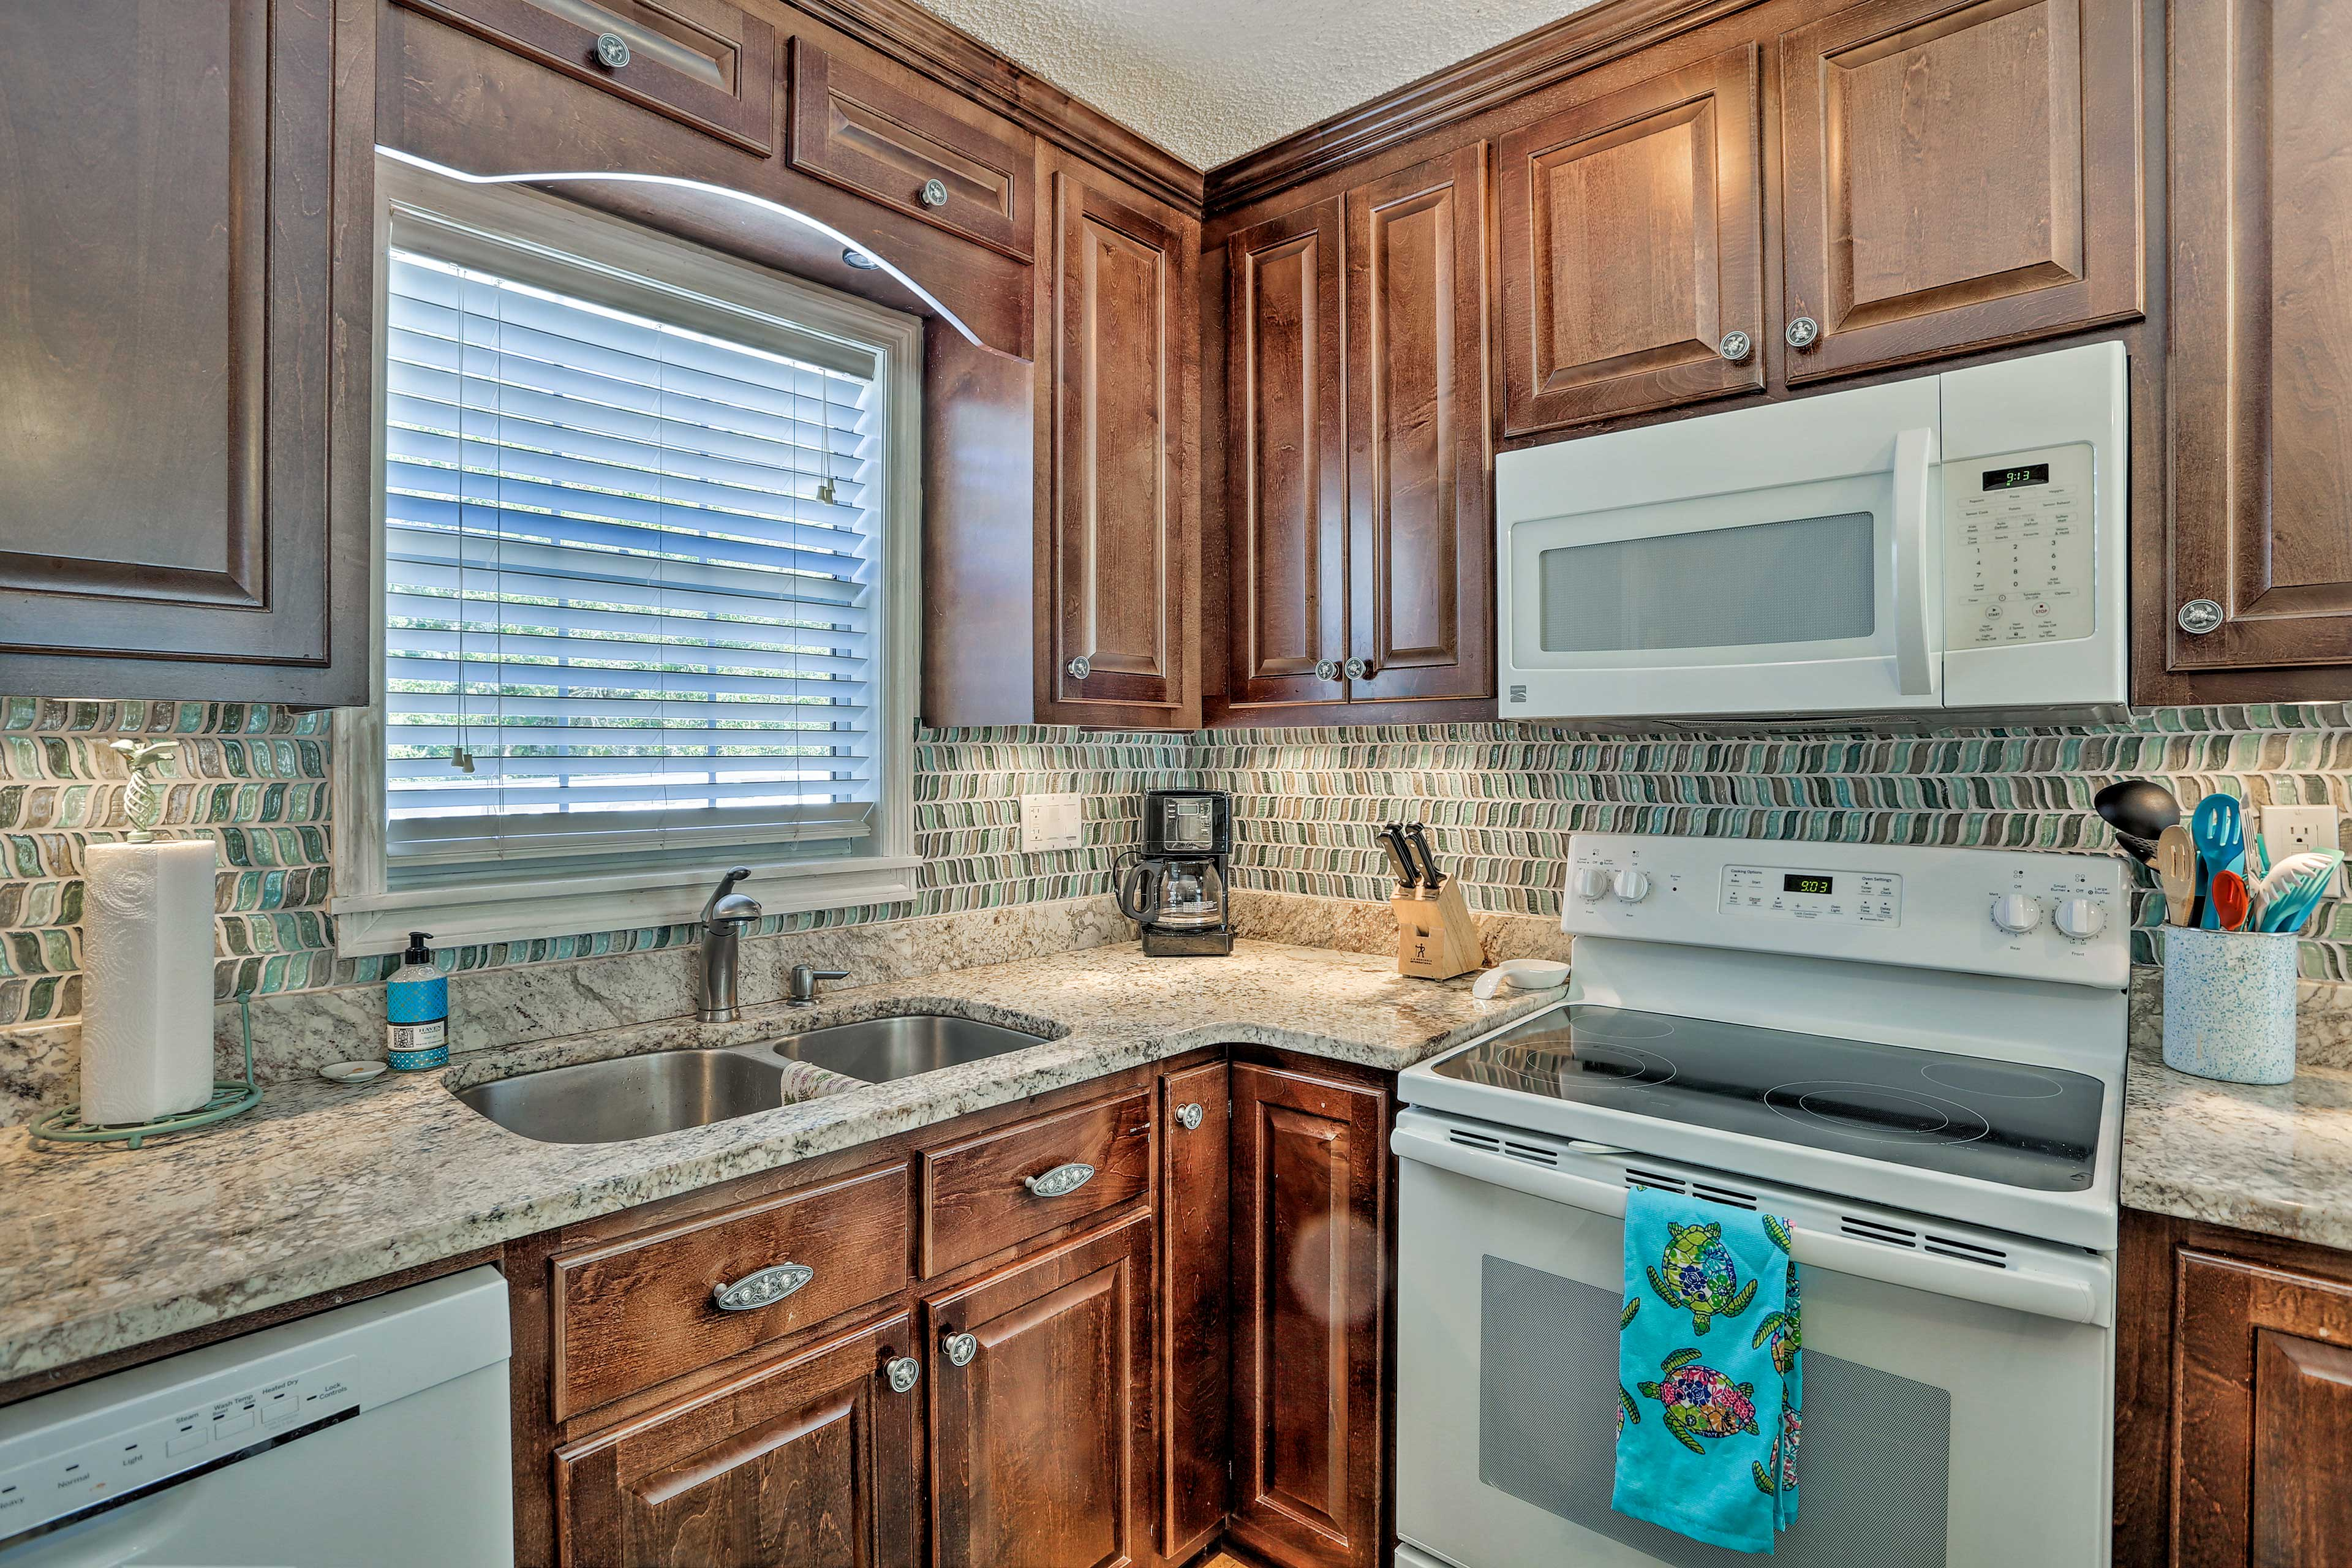 The colorful tile backsplash adds a touch of the ocean to the kitchen!